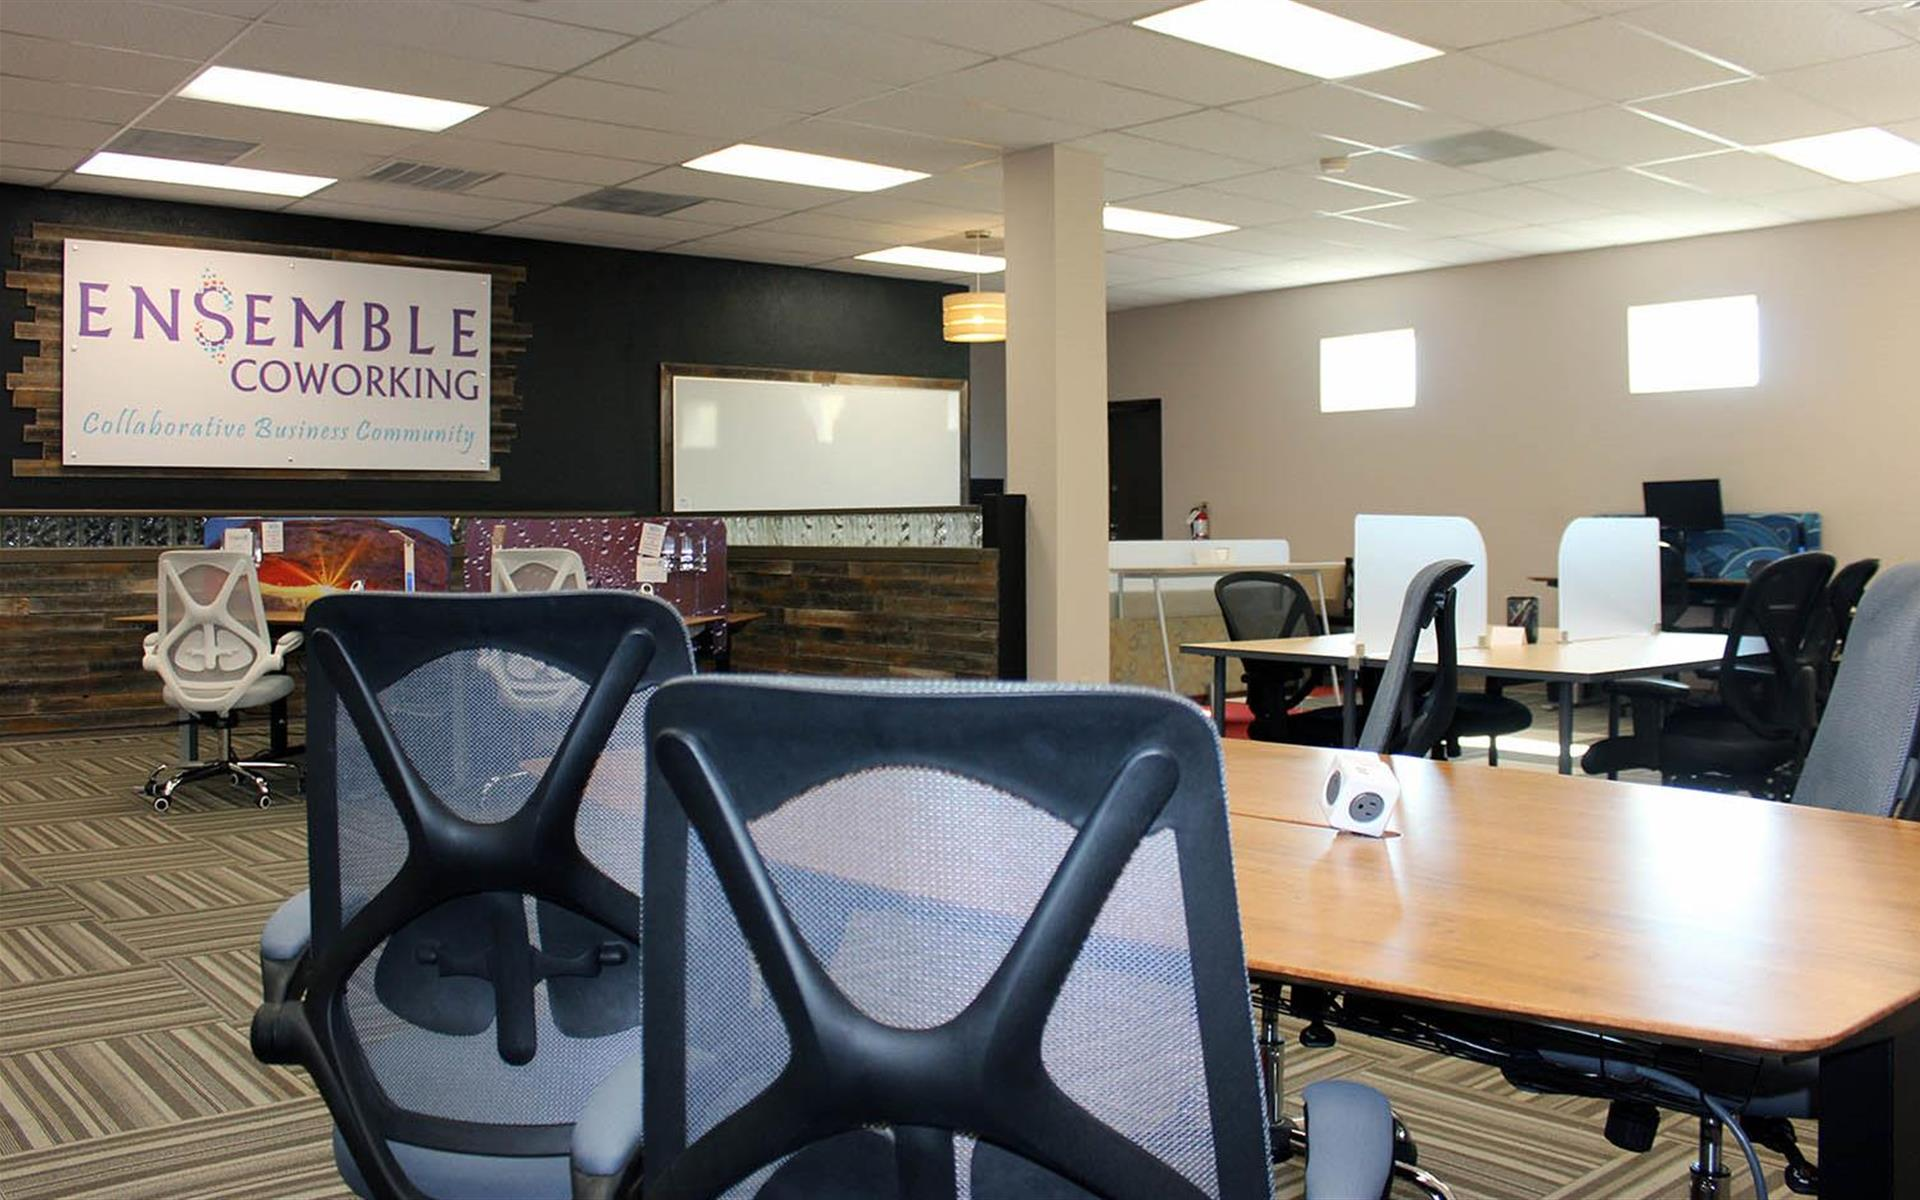 Ensemble Coworking - Bridge Coworking Membership